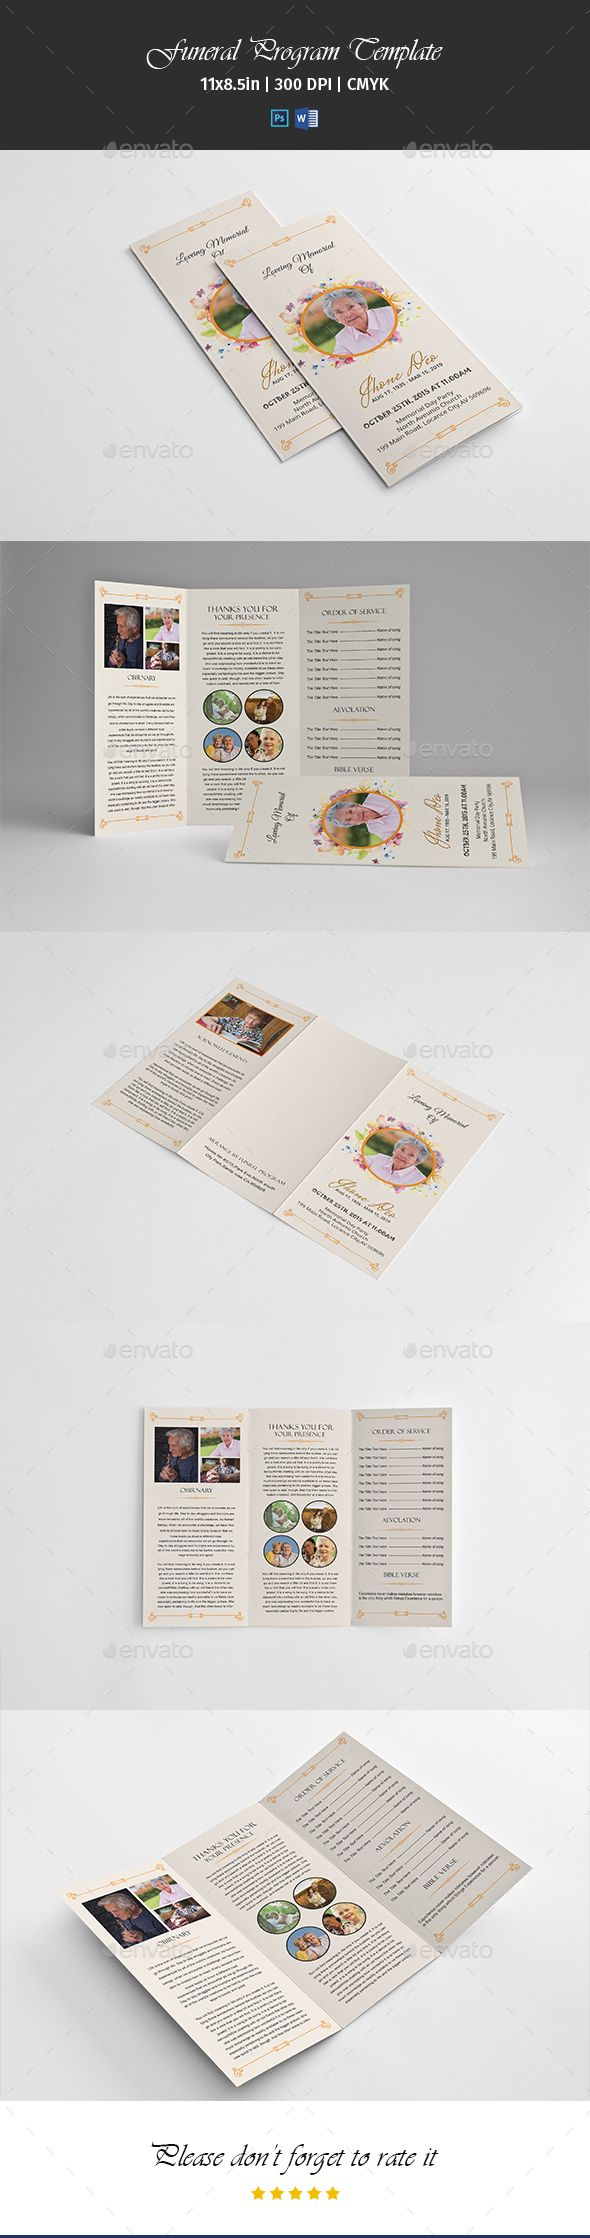 Best FuneralMemorial Programs Templates Images On